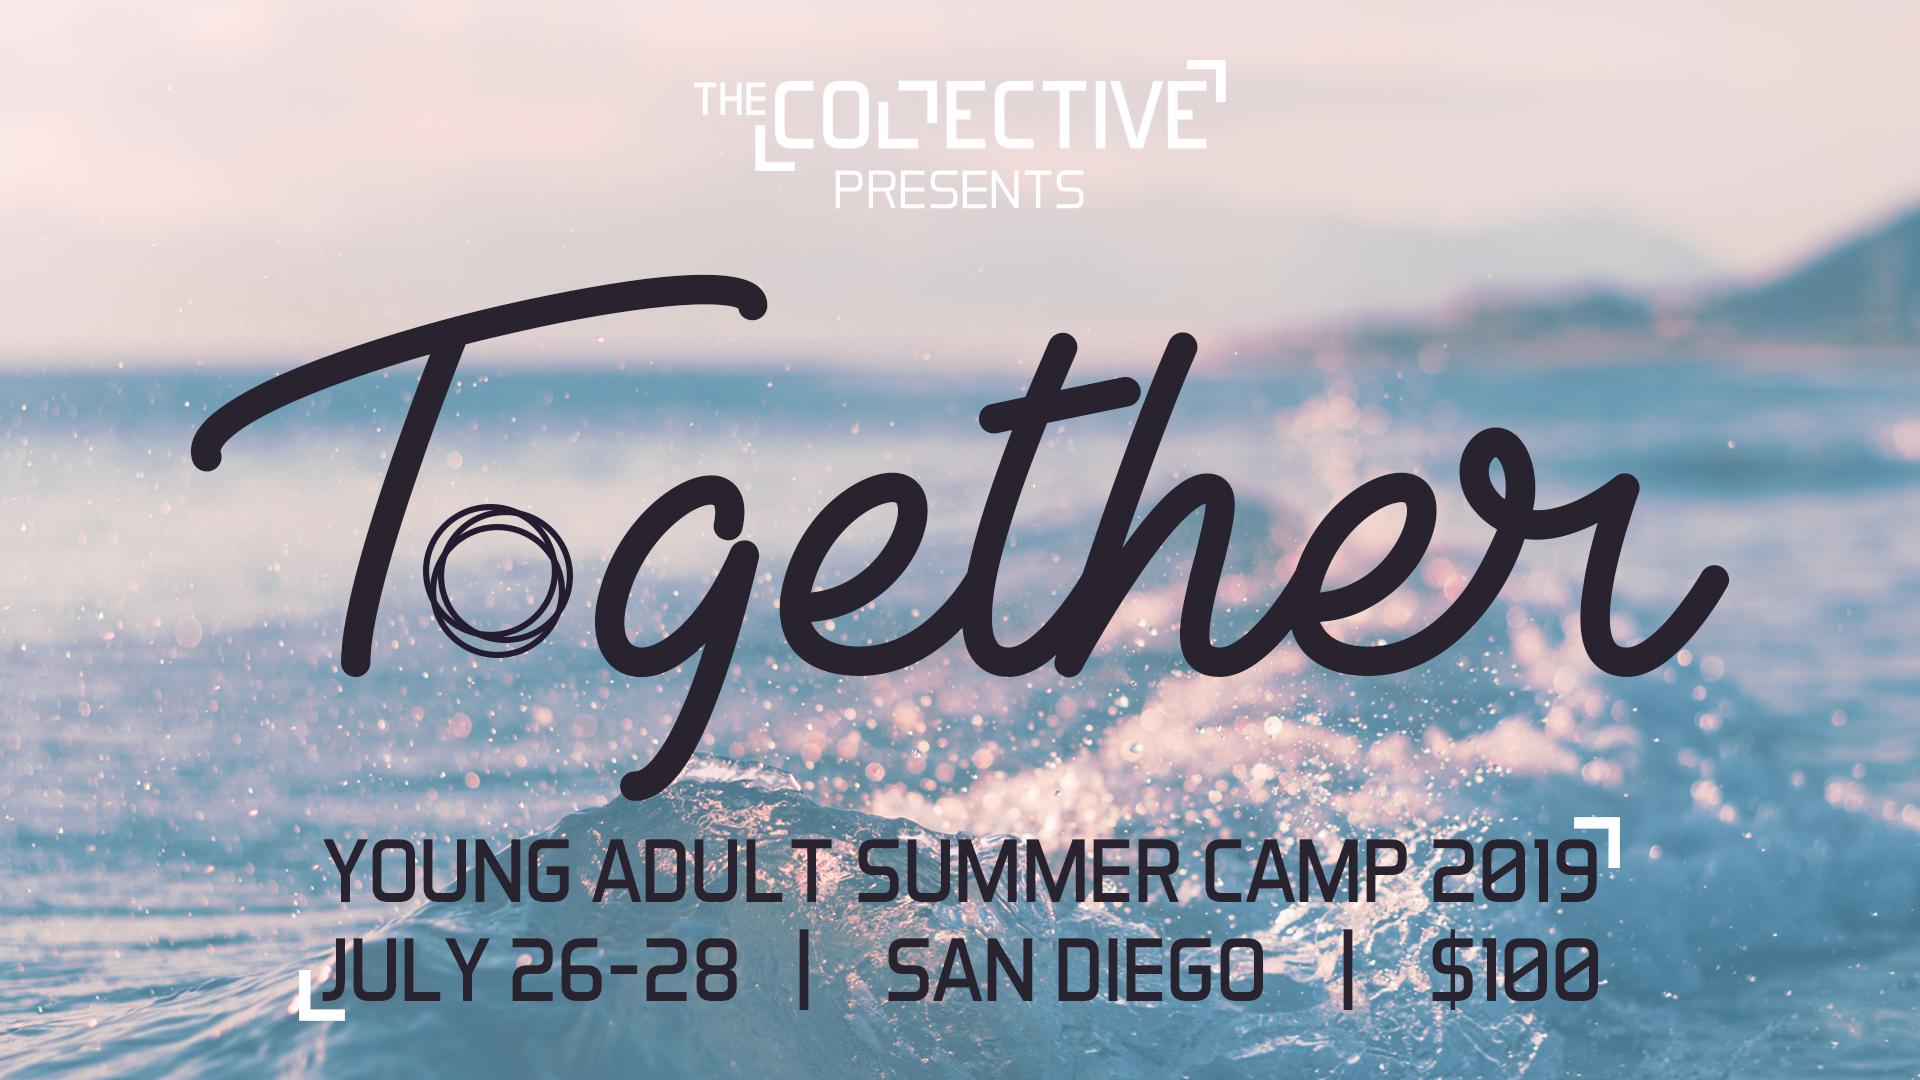 Young Adult camp - Every summer we retreat together with other young adults from our district in San Diego. Stay tuned for the dates in 2020.